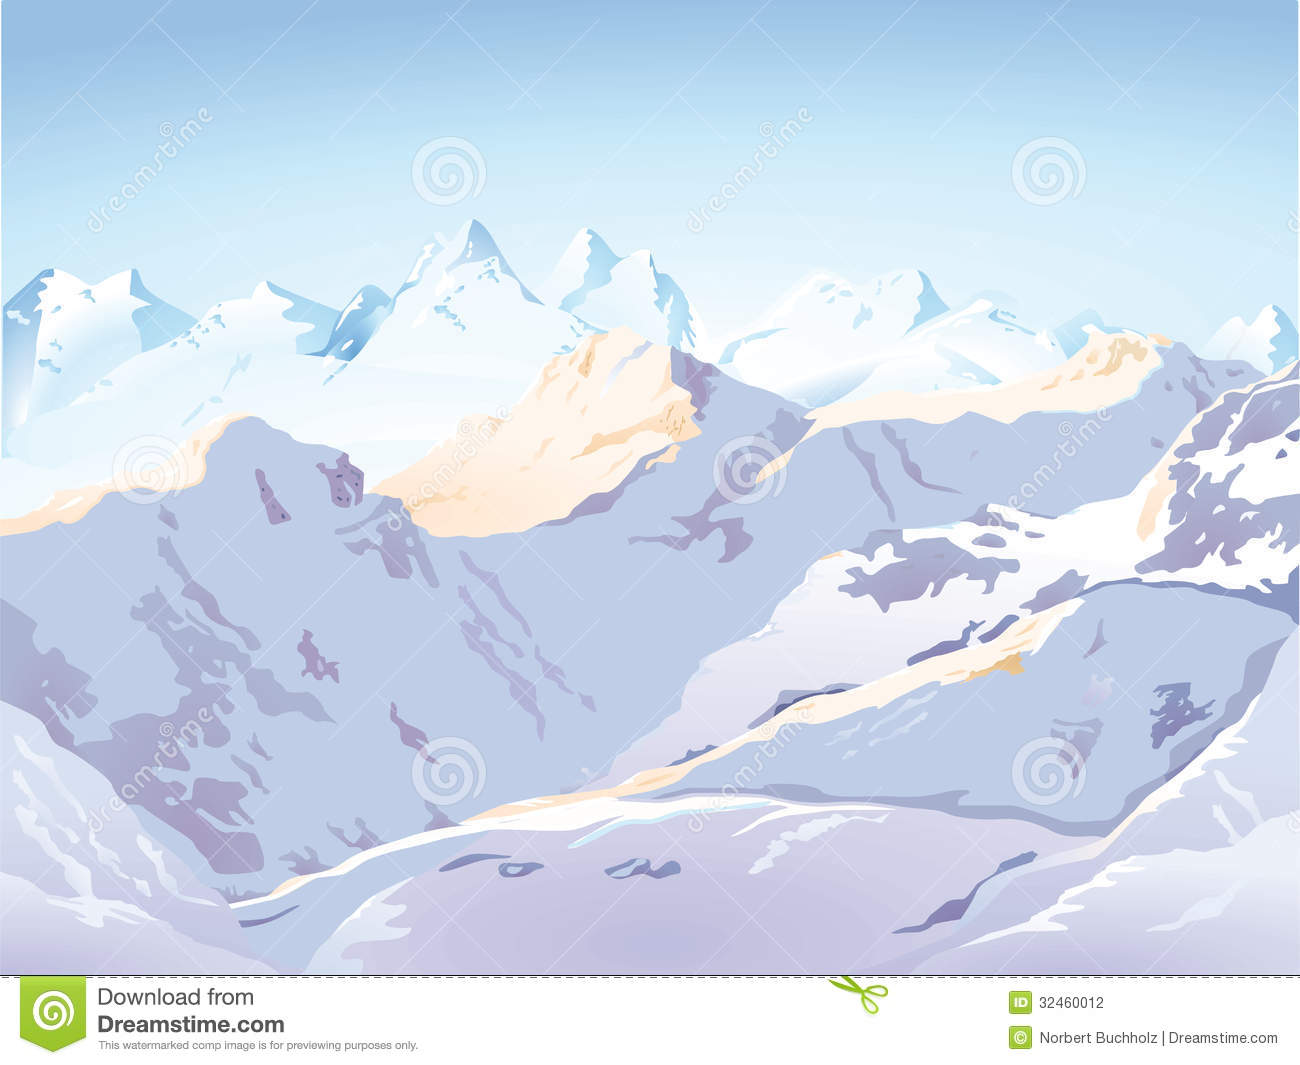 Scenic Illustration Of Snow Capped Mountain Range